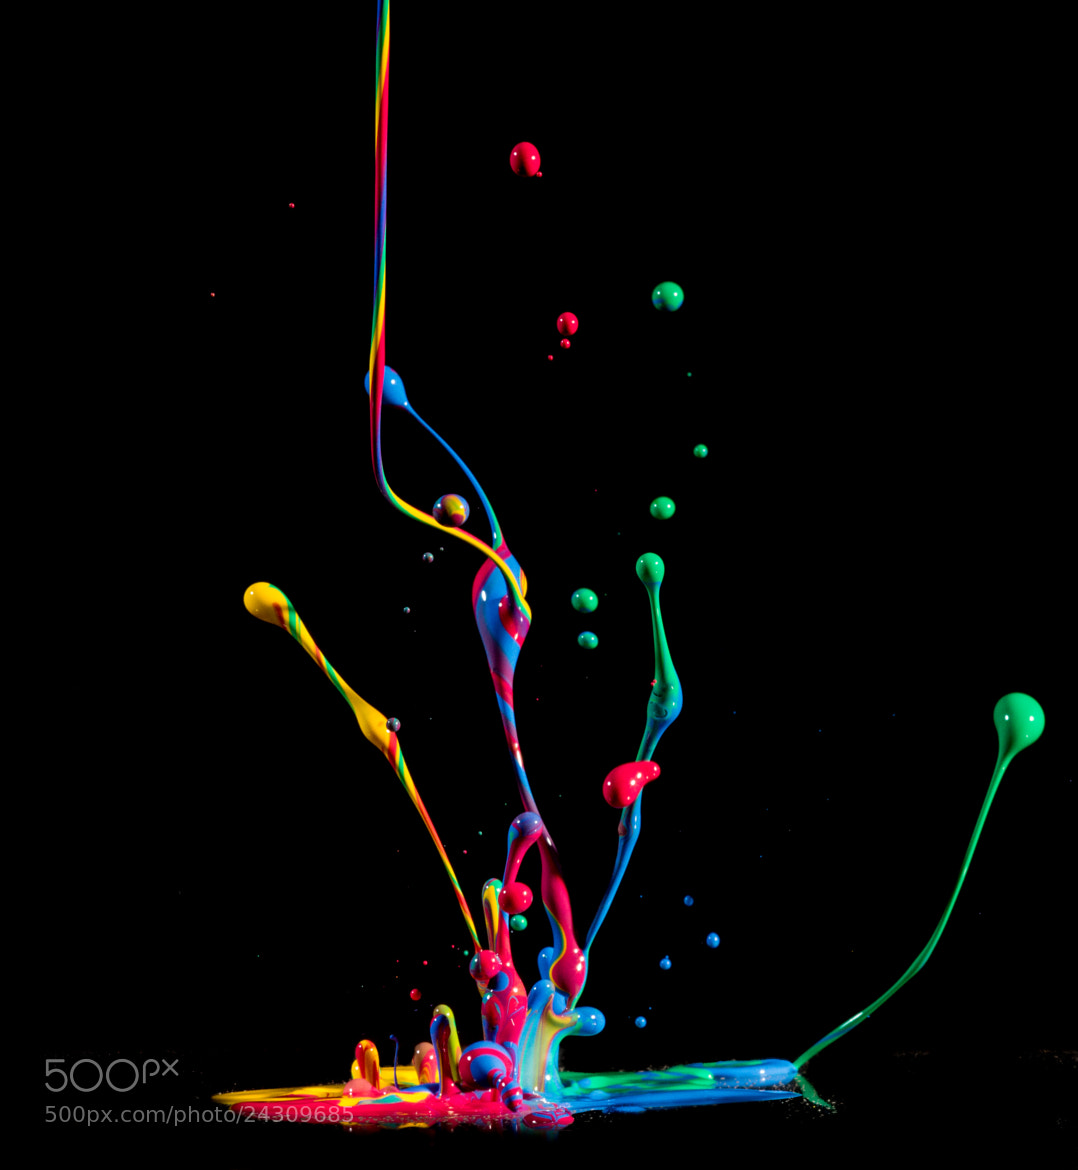 Photograph Color_Splash_1 by ElSauza on 500px